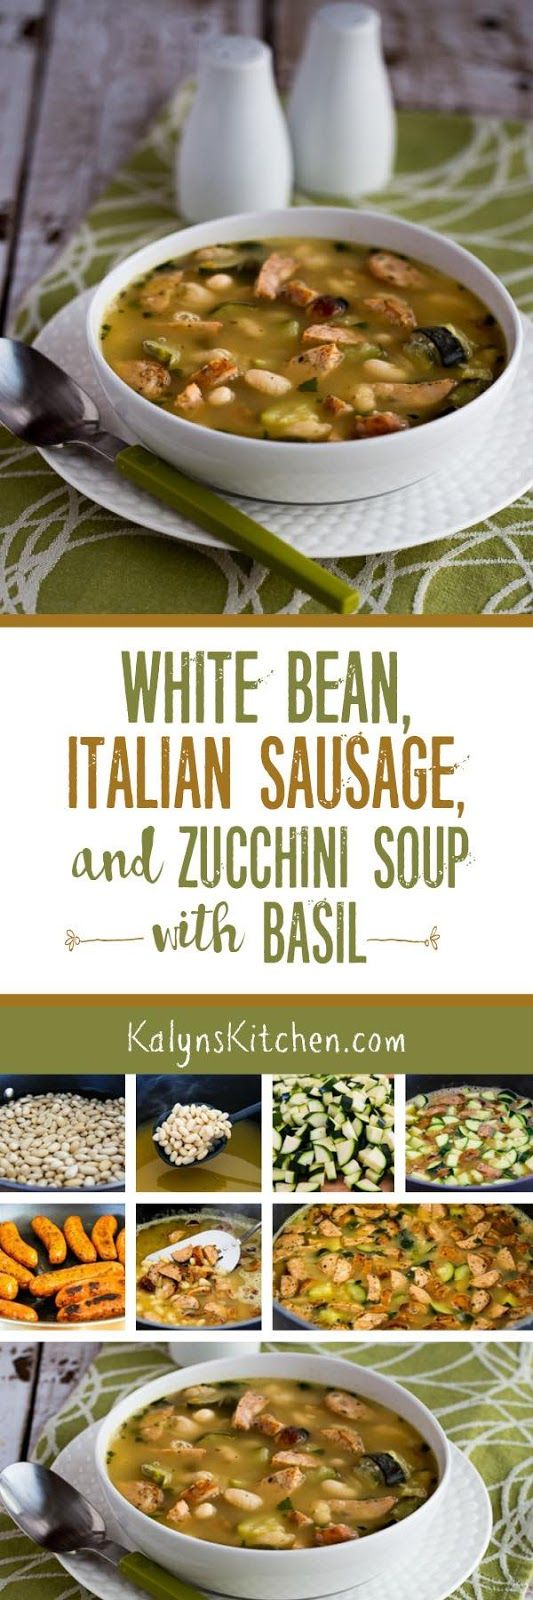 This White Bean Soup with Turkey Italian Sausage, Zucchini, and Basil is AMAZING! This is a low-glycemic soup; for lower carbs, use more sausage and less beans. [found on KalynsKitchen.com]